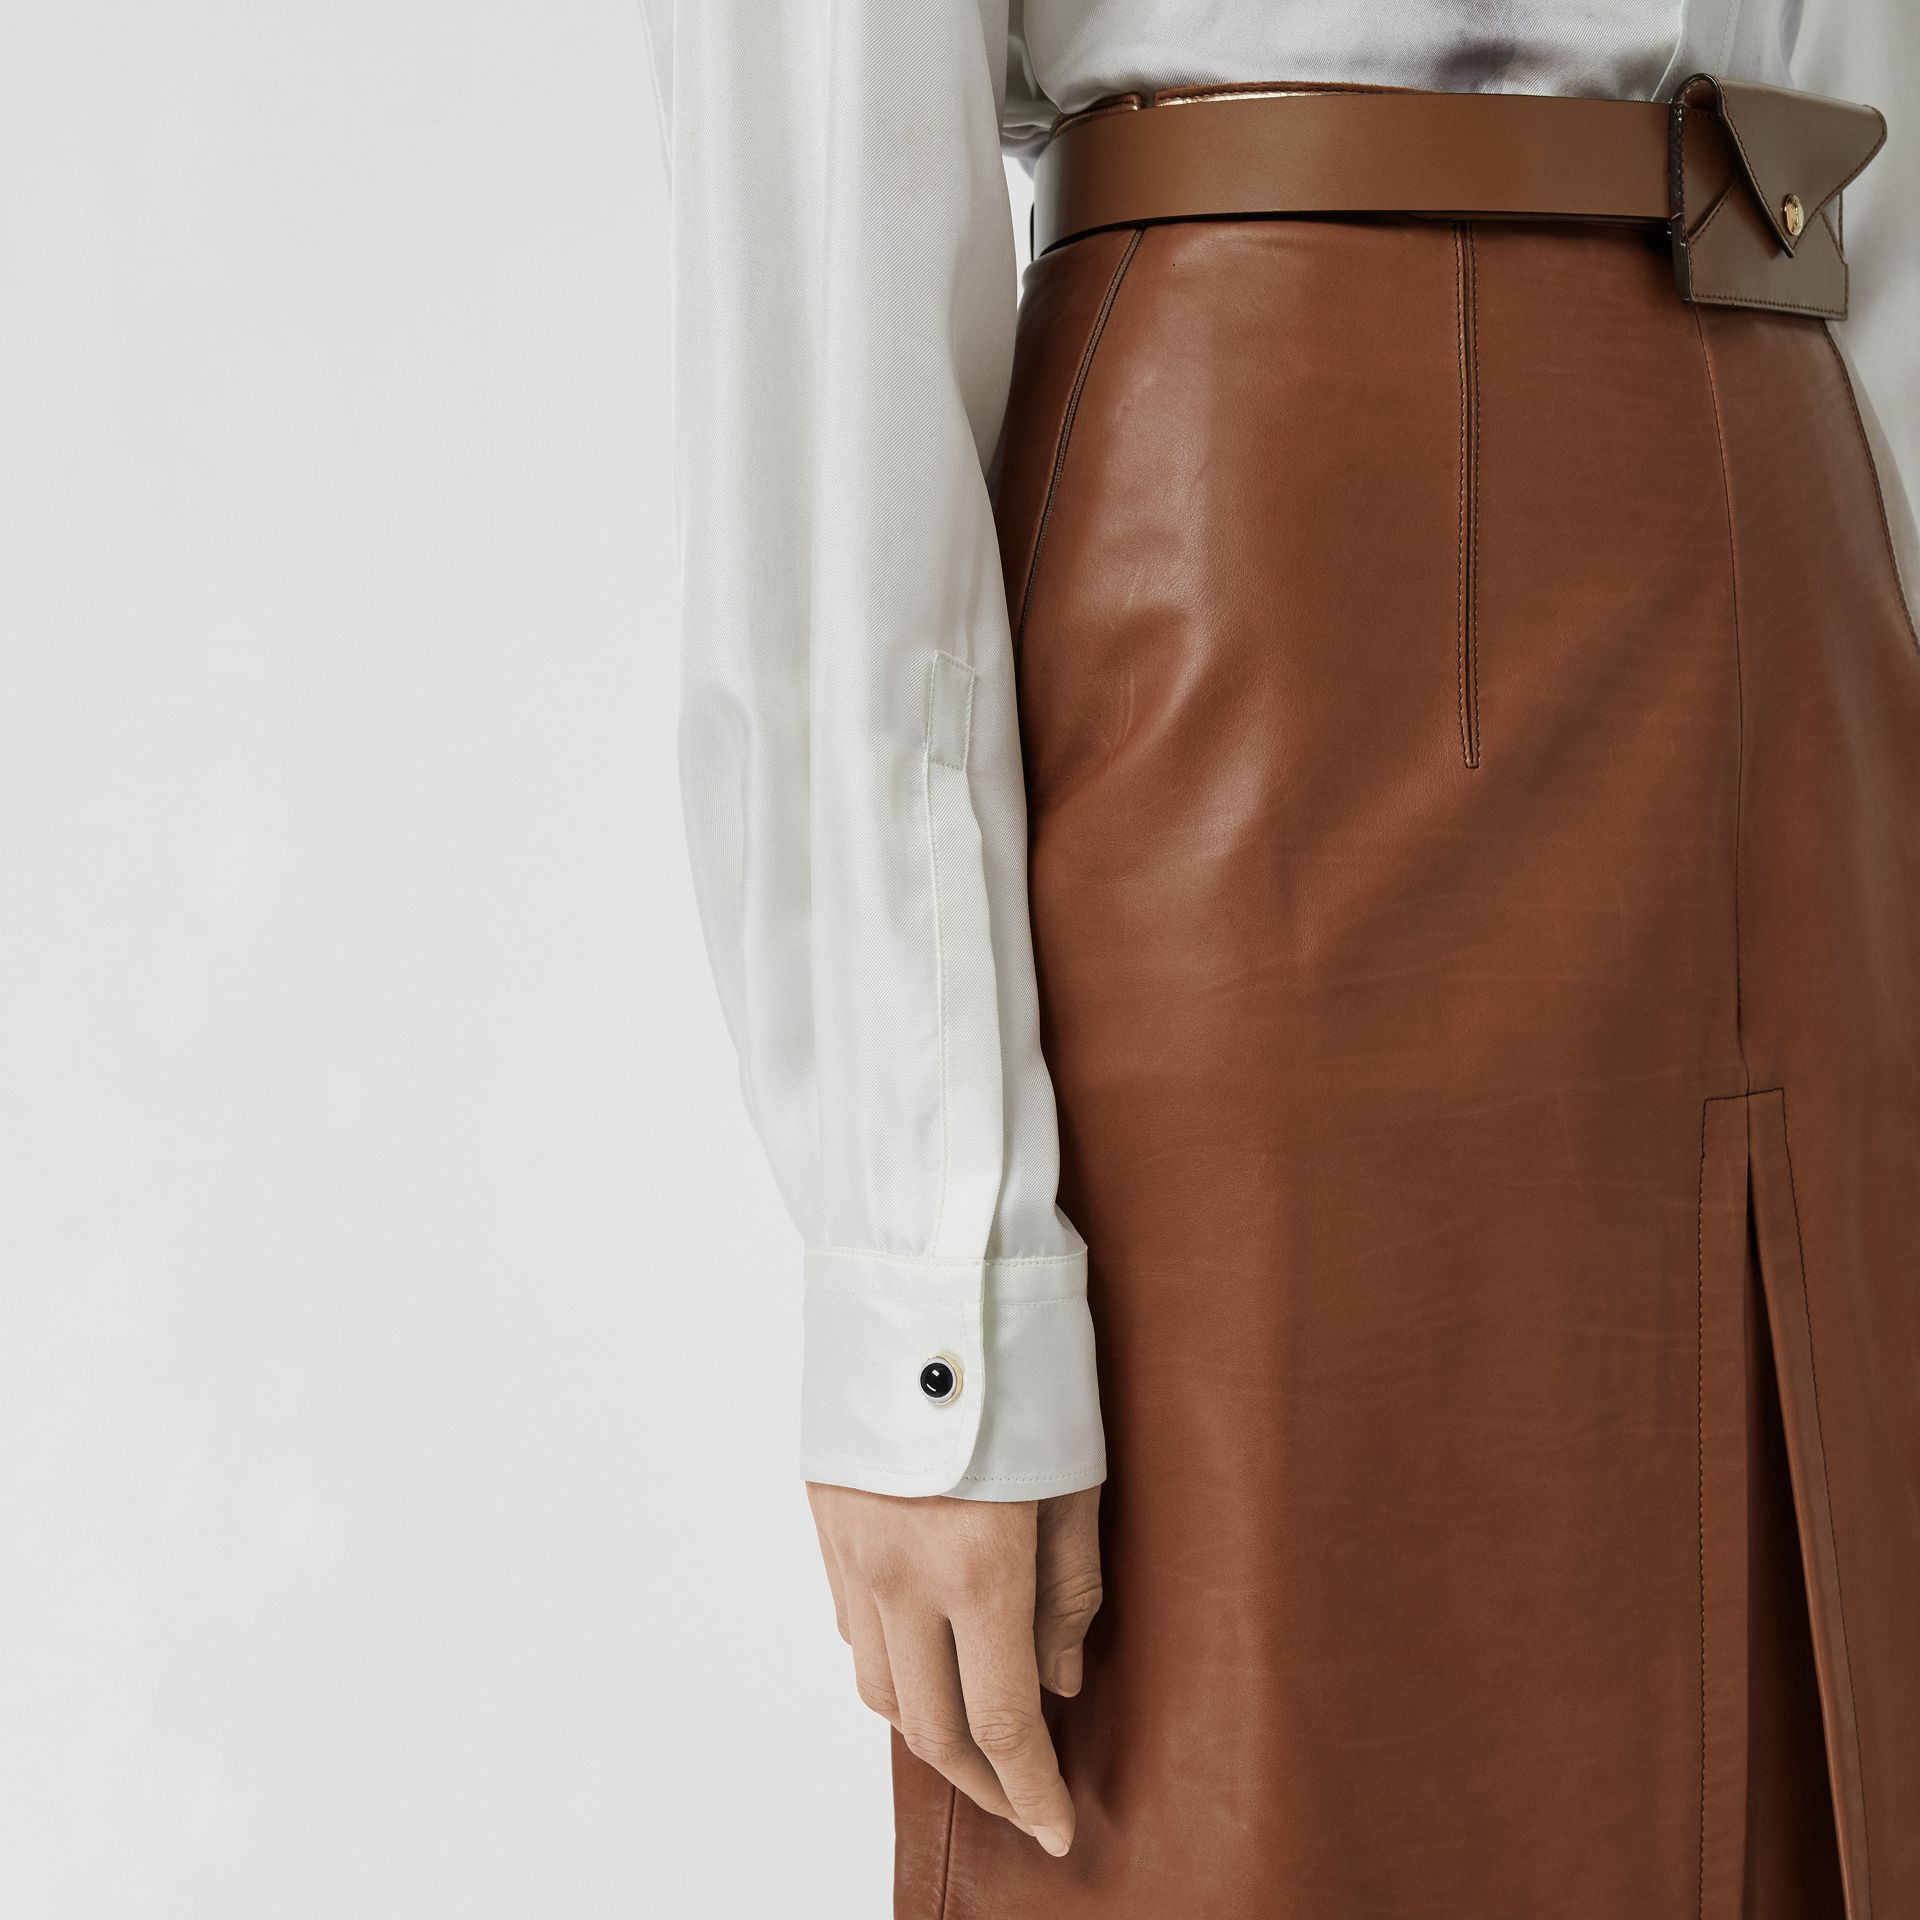 Box Pleat Detail Leather A-line Skirt in Flaxseed - Women | Burberry Australia - gallery image 1